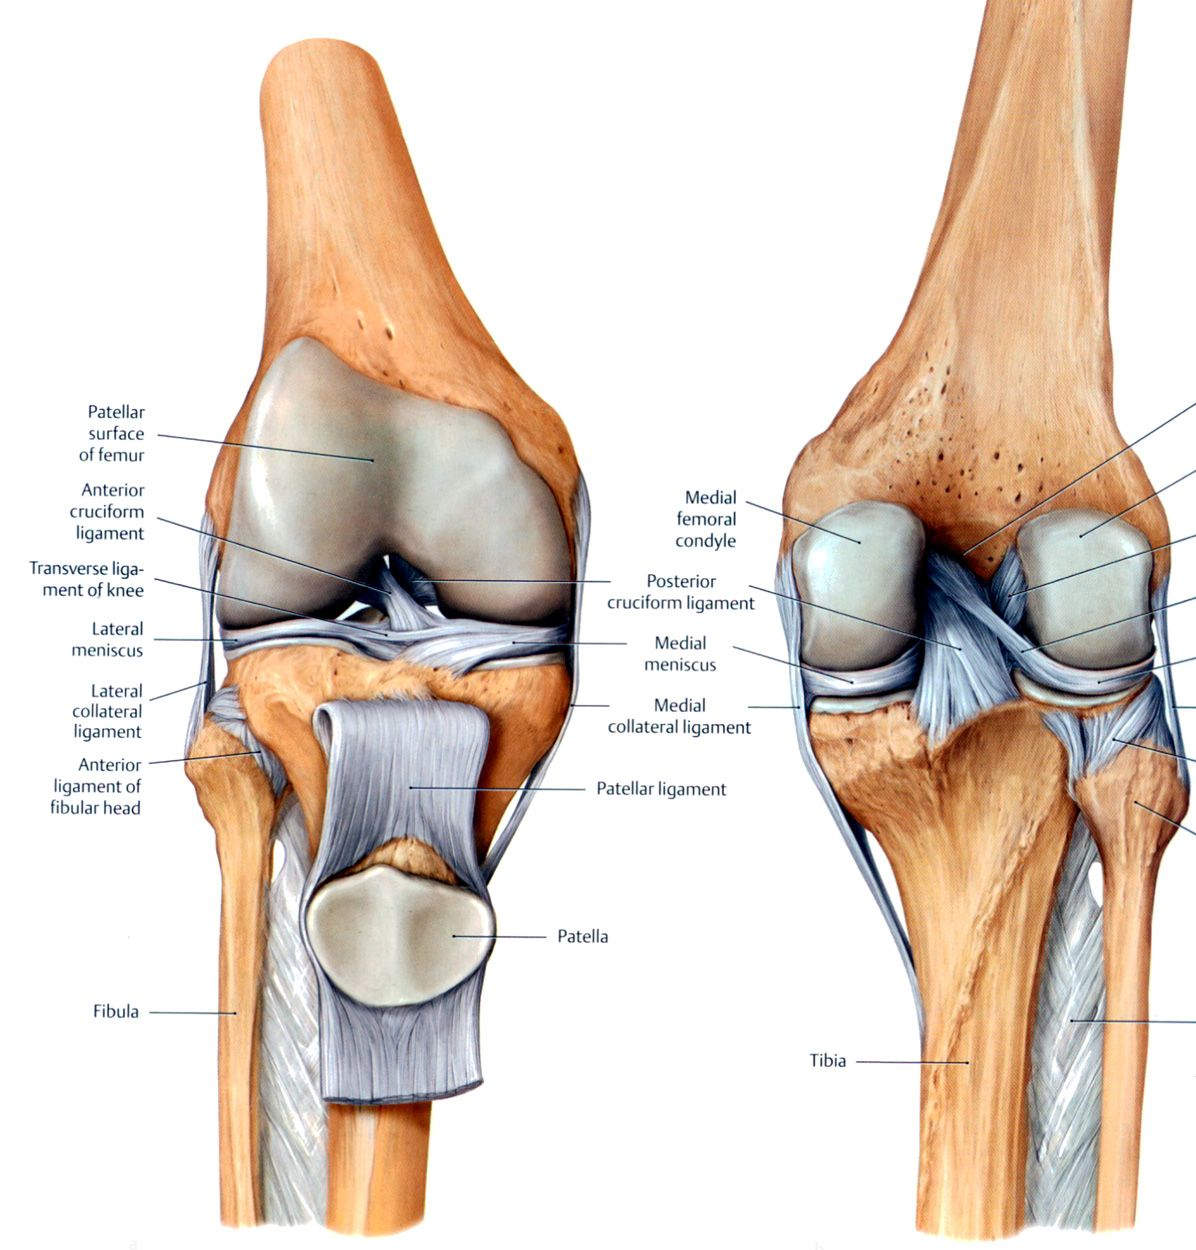 Knee ligament anatomy anatomy pinterest knee ligaments knee ligament anatomy ccuart Gallery